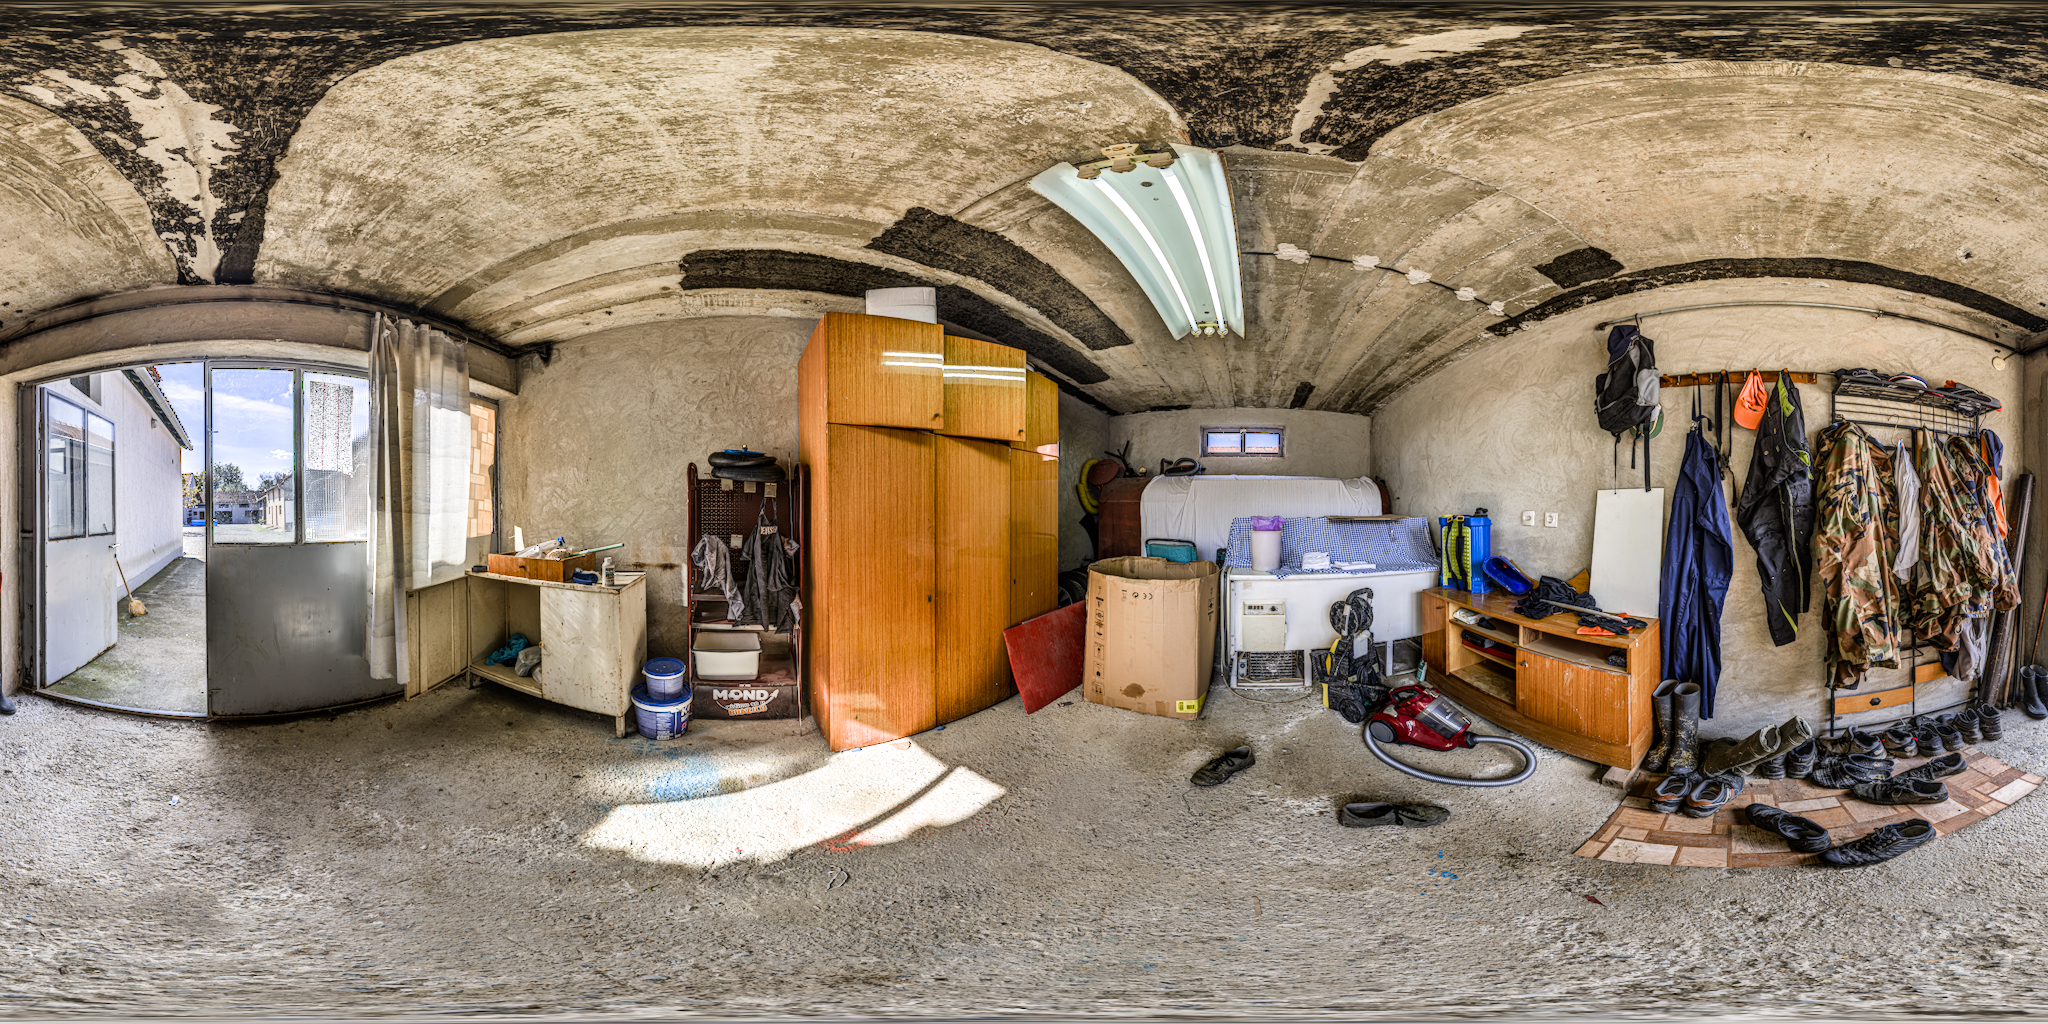 HDRI-Skies-Storage-Room-Novoselci